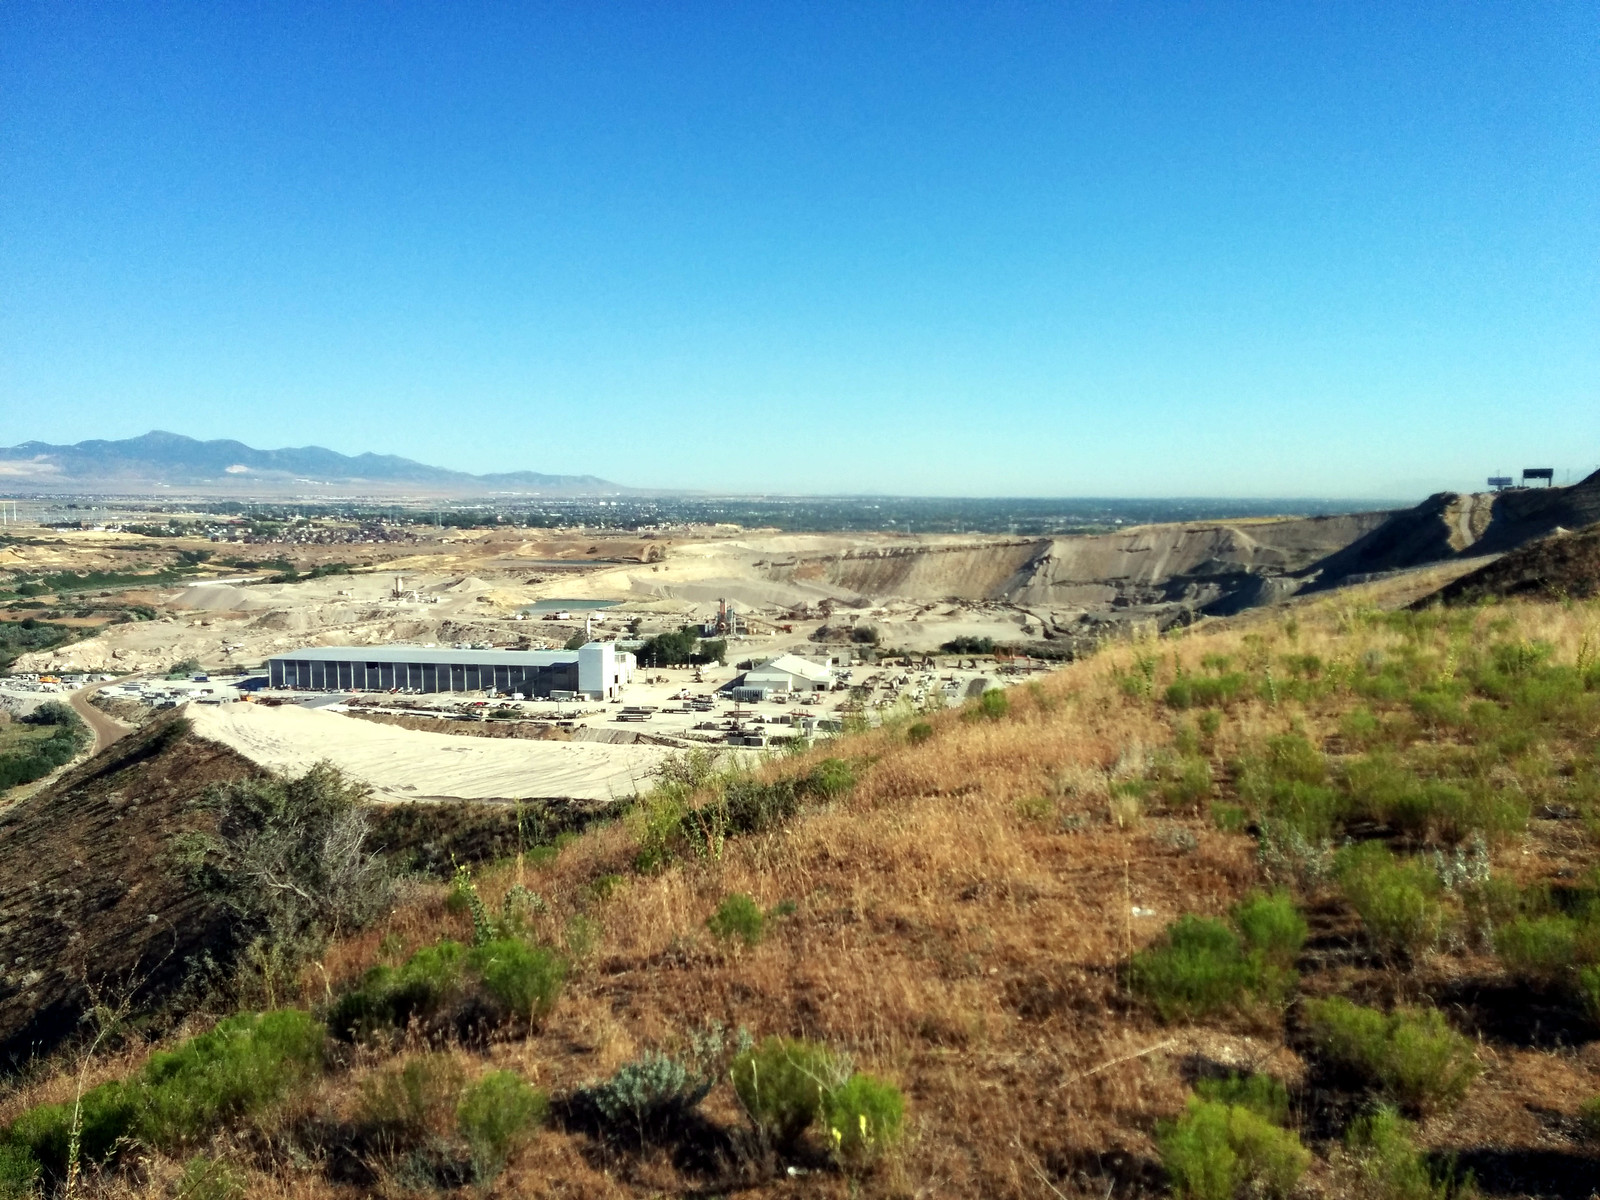 NSA data center (seen from Freedom Ridge) 4, Bluffdale, Utah, USA | by gruntzooki